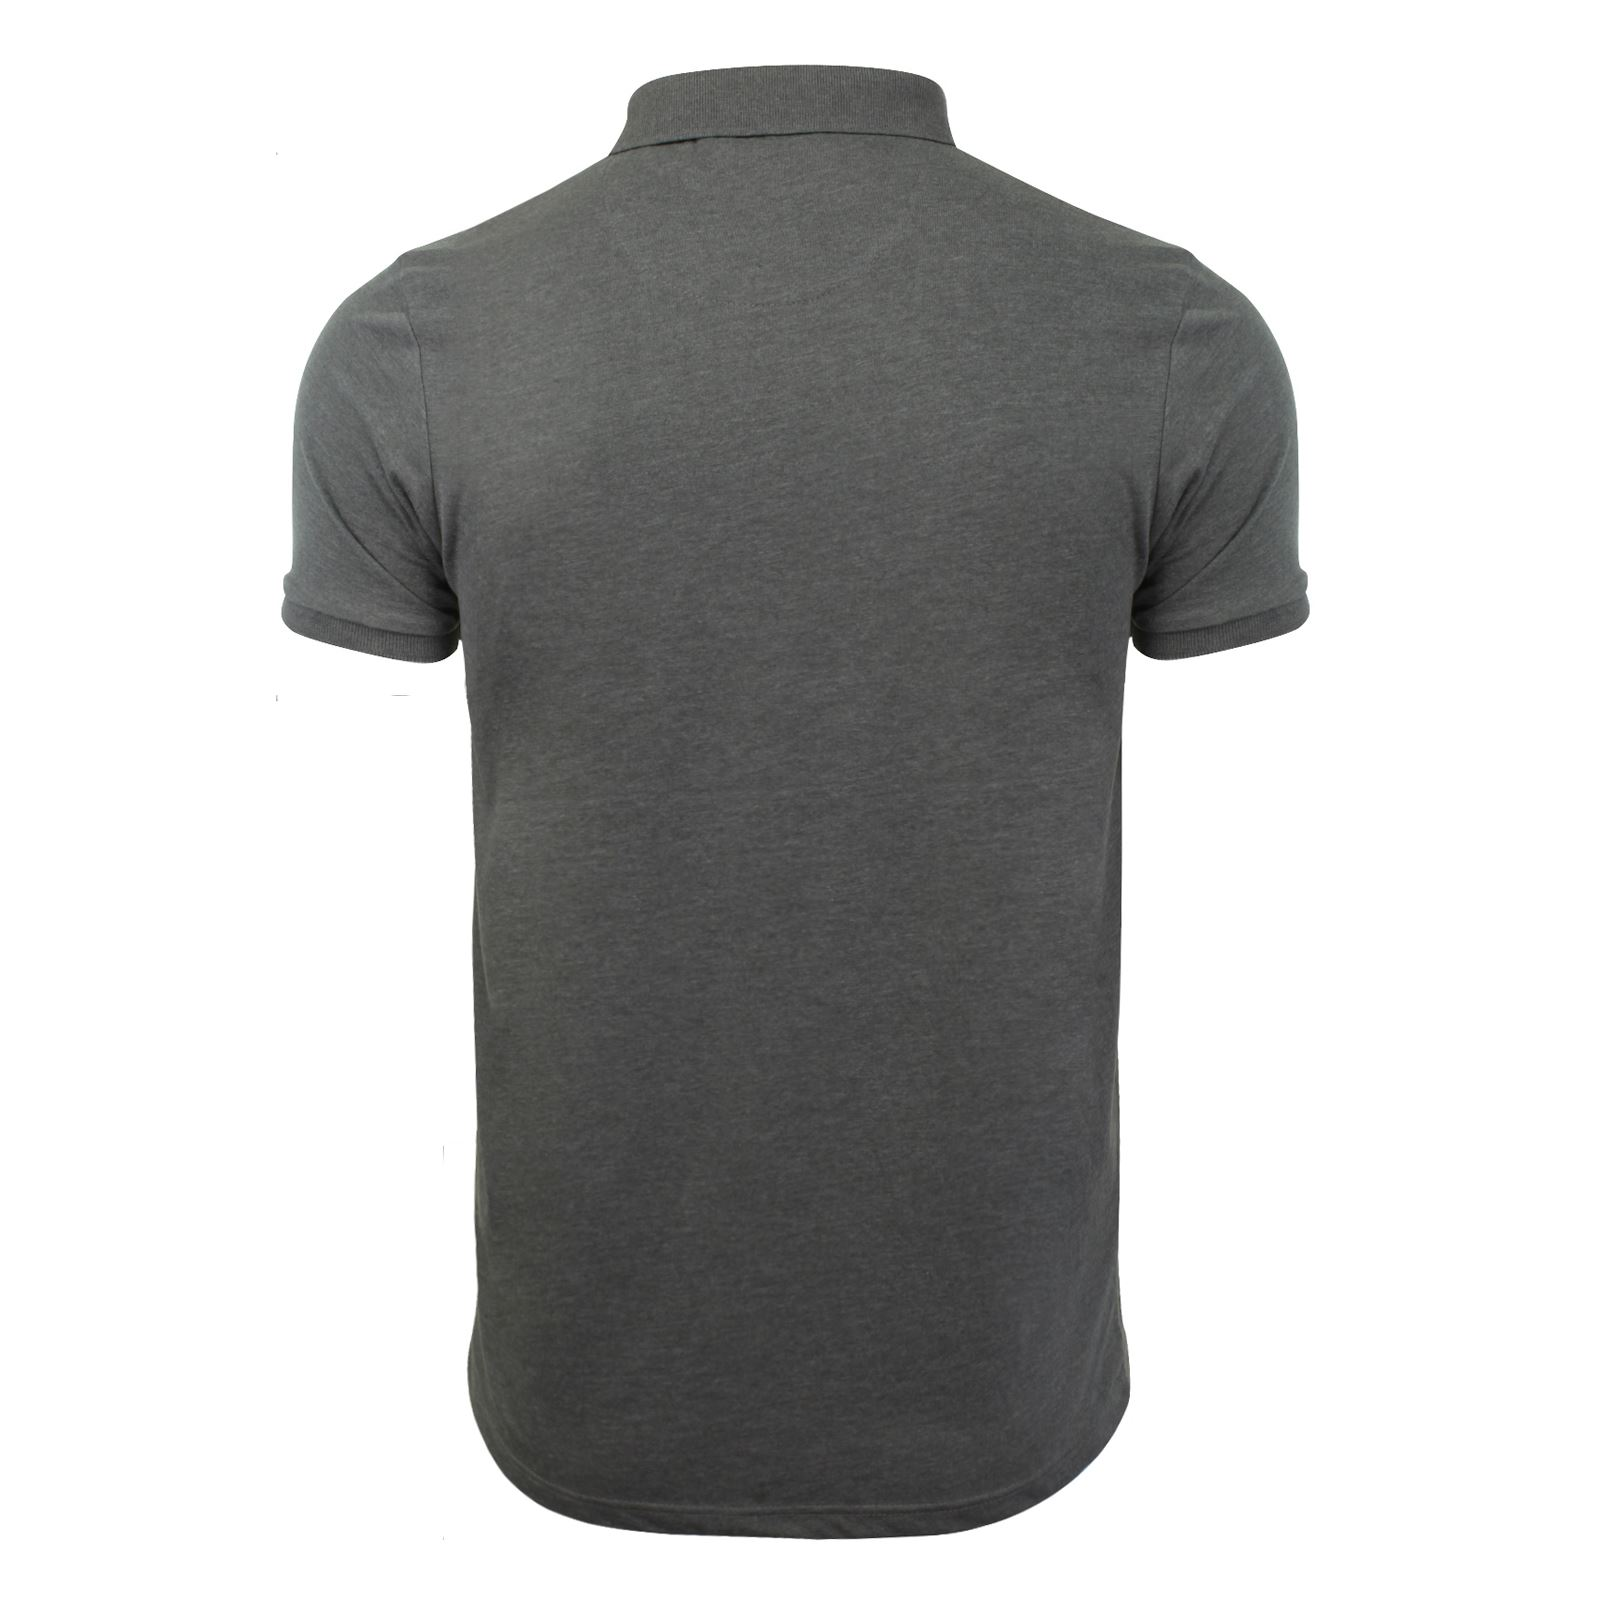 Mens-Polo-T-Shirt-Brave-Soul-Chimera-Chambray-Collared-Cotton-Casual-Top thumbnail 36